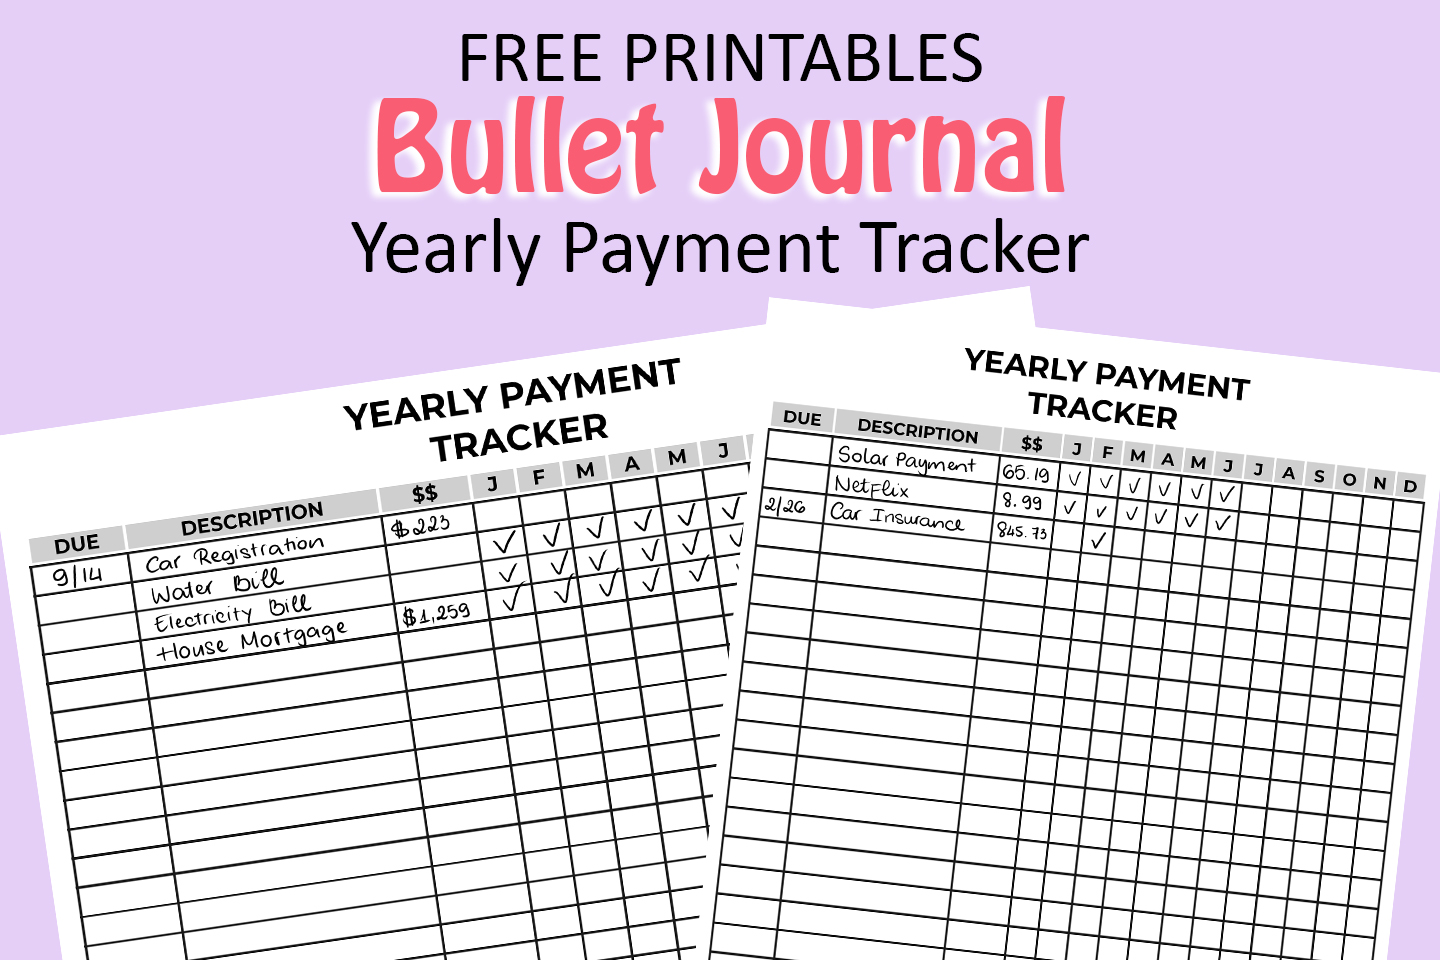 free bullet journal printables - yearly payment tracker